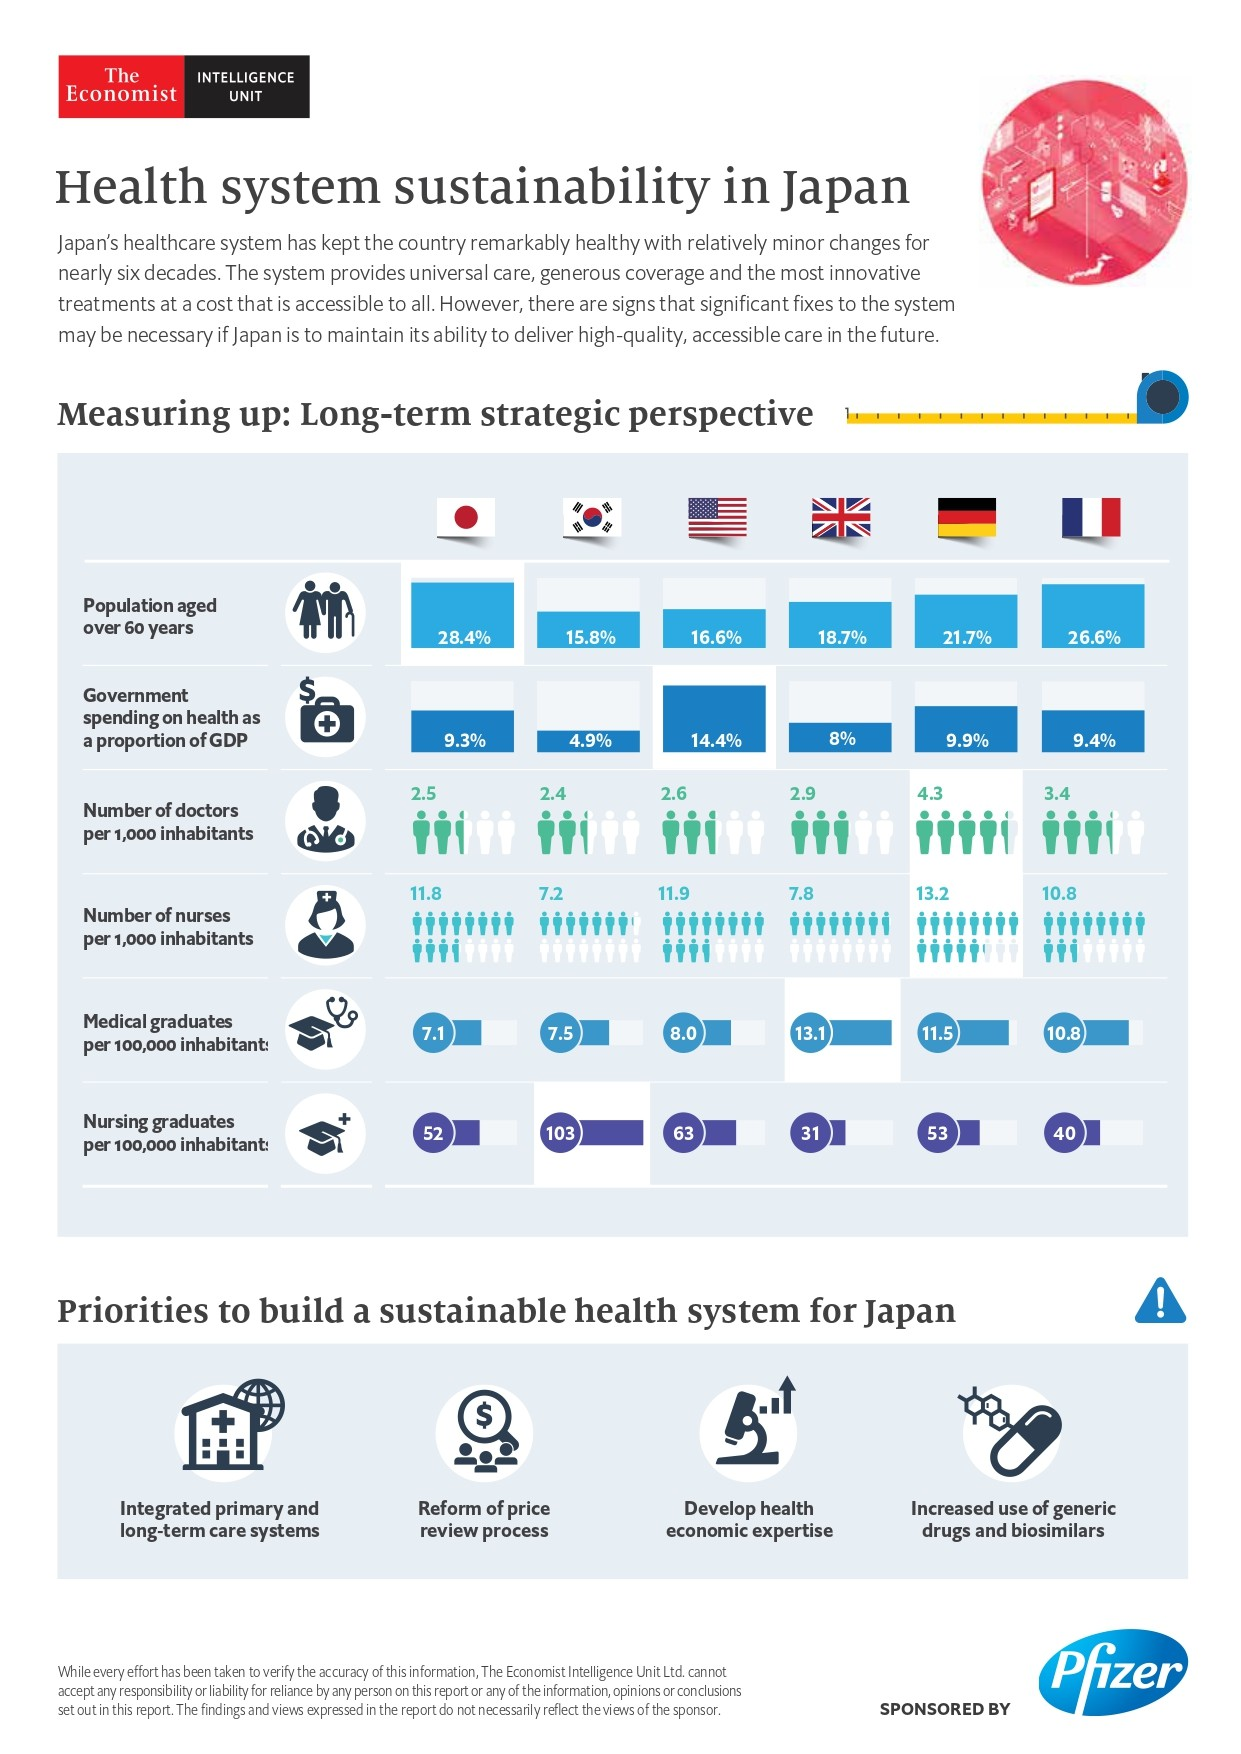 Health system sustainability in Japan